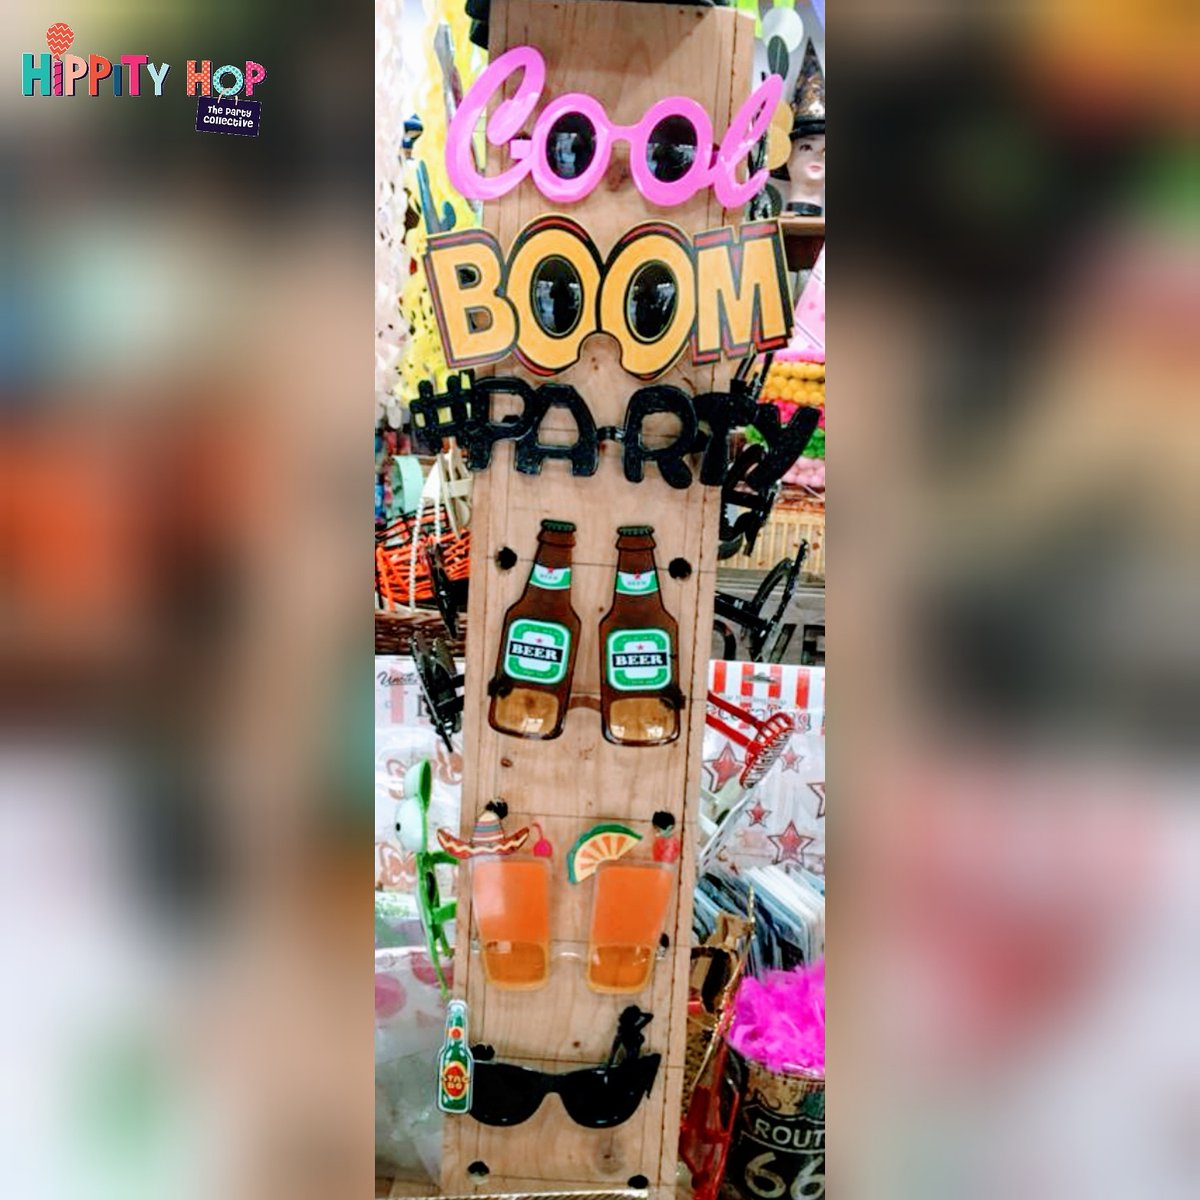 Party Goggles for a perfect sundown house party   #hippityhopstore #goggles #partygoggle #partywear #costume #houseparty #cocktailparty #dinner #drinks #alcohol #drink #fun #friends #friendsforever #partysupplies #partyshop #vodka #whiskey #beer #wine https://t.co/VOakx5KskZ